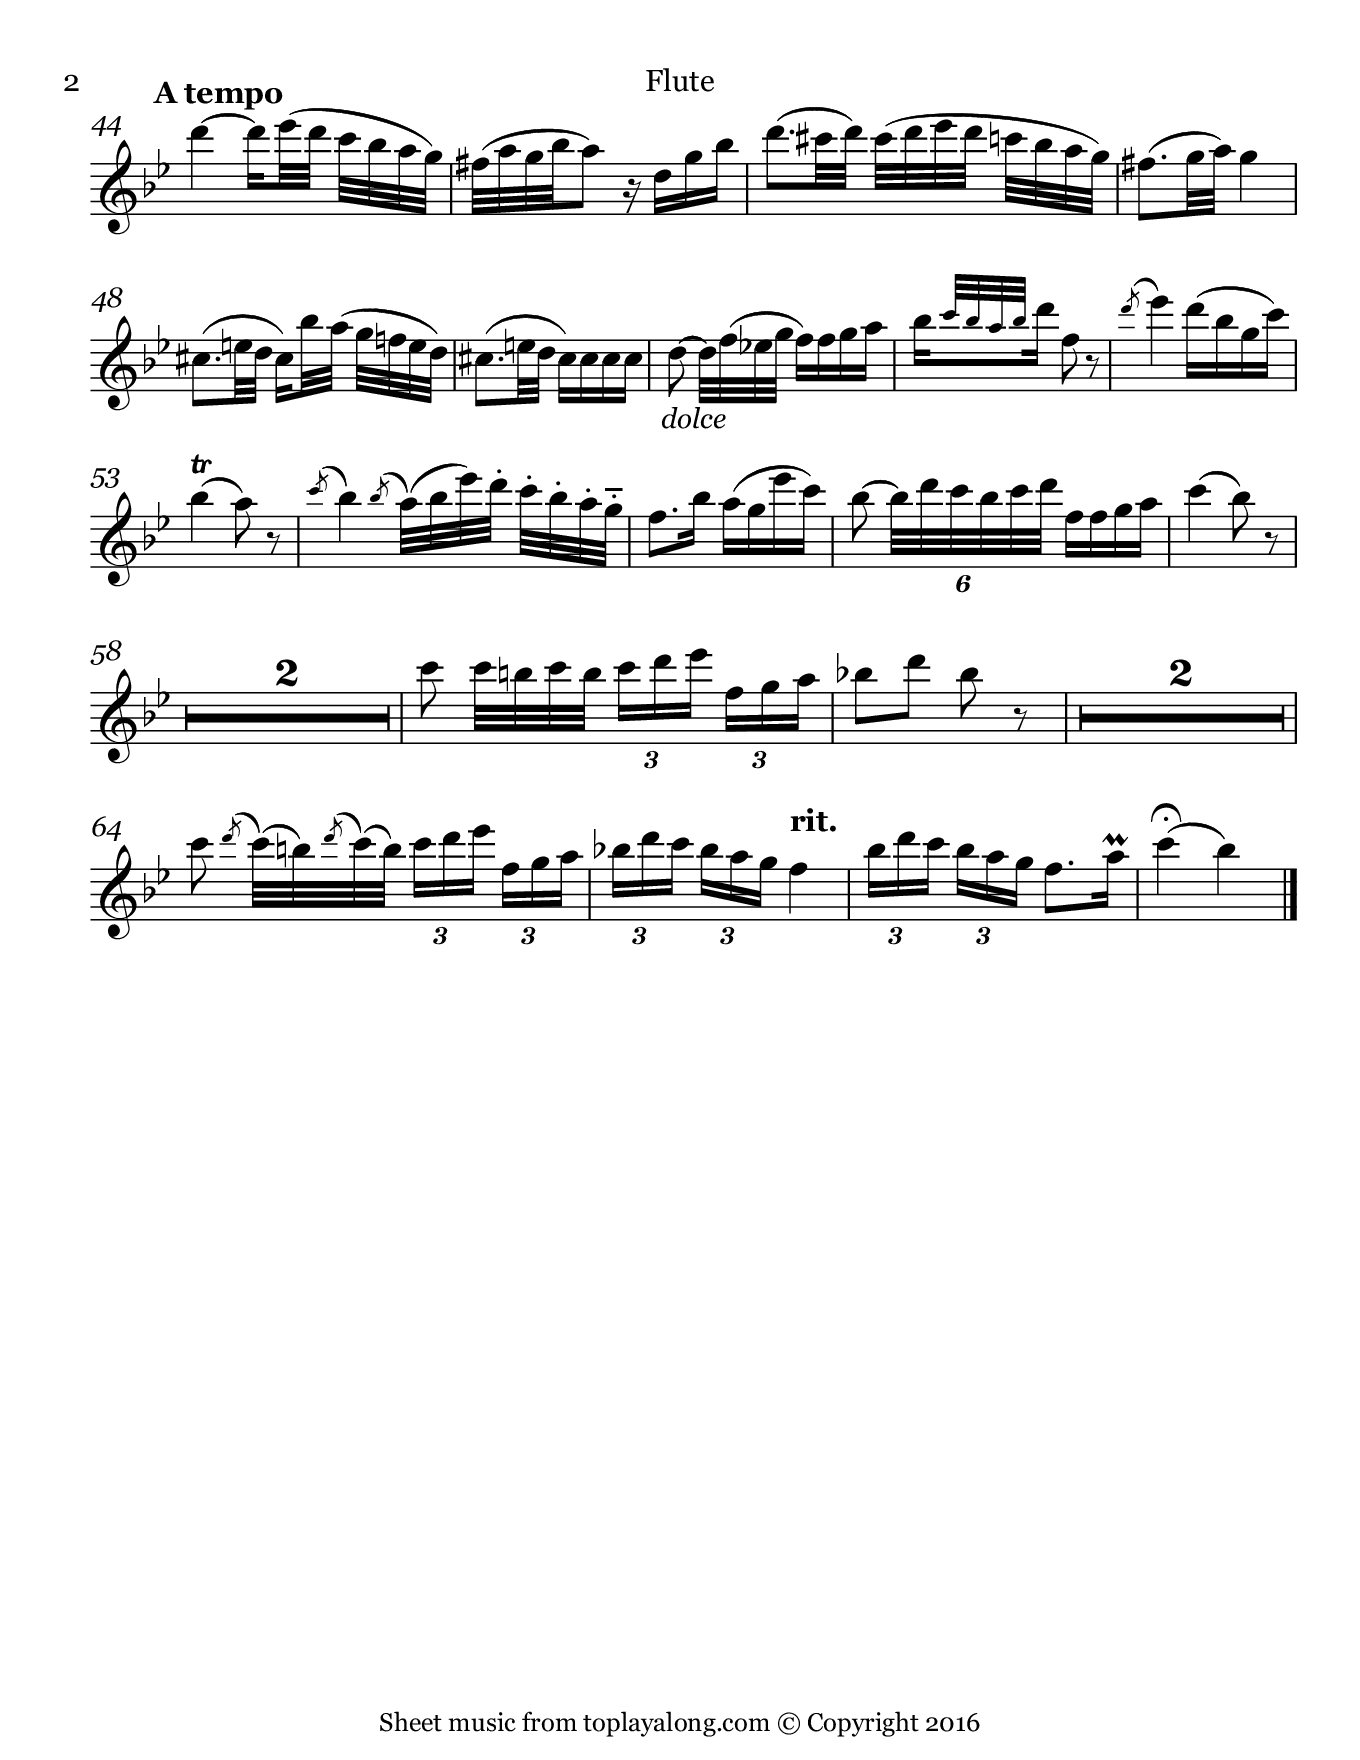 Flute Concerto No. 2 (II. Larghetto) by Danzi. Sheet music for Flute, page 2.